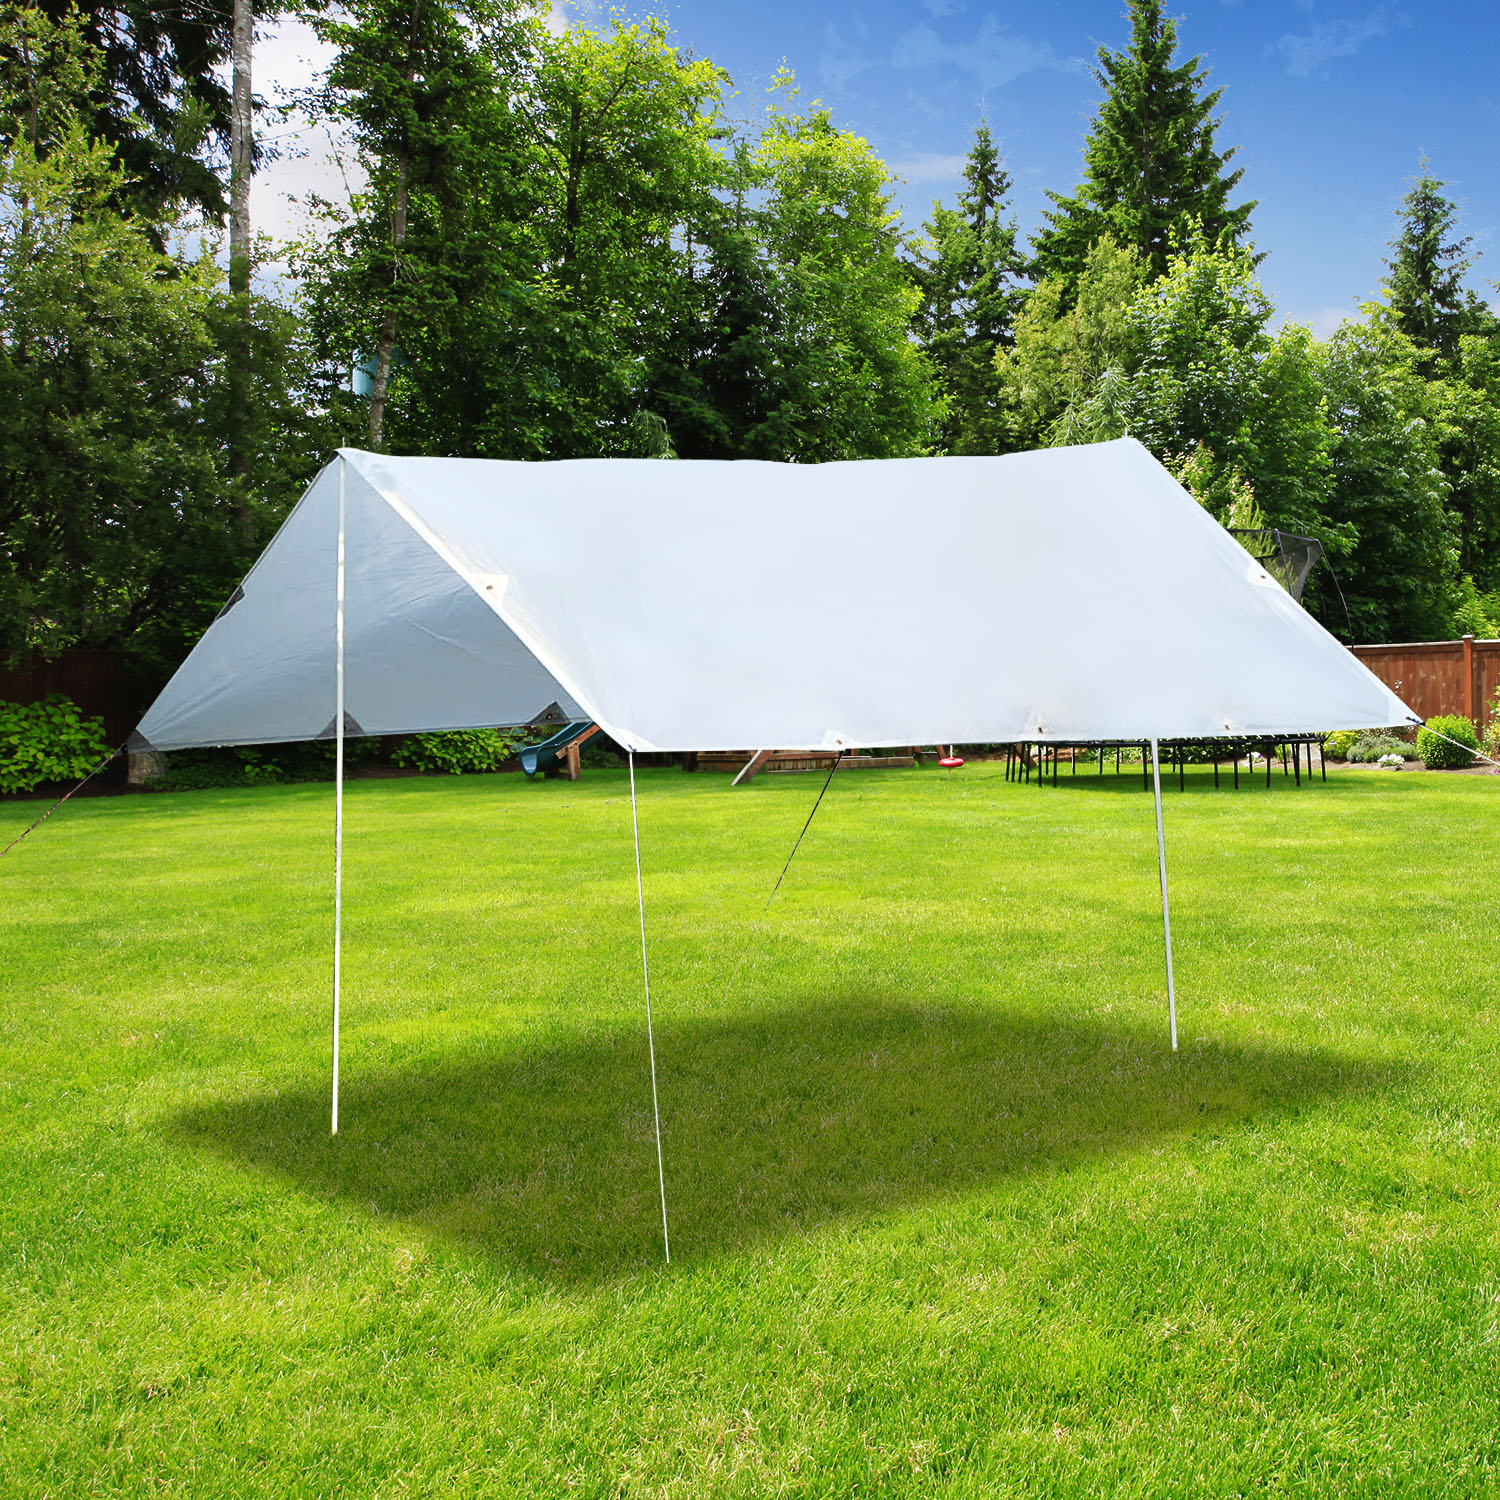 Image of £29.99 Outsunny 430Lx350W cm Waterproof Tent Shelter-Cream White / Sunshade UV Protection Awning Canopy Outdoor Camping Tarp Hiking Shelter (Cream White) 840-132CW 5056029892534